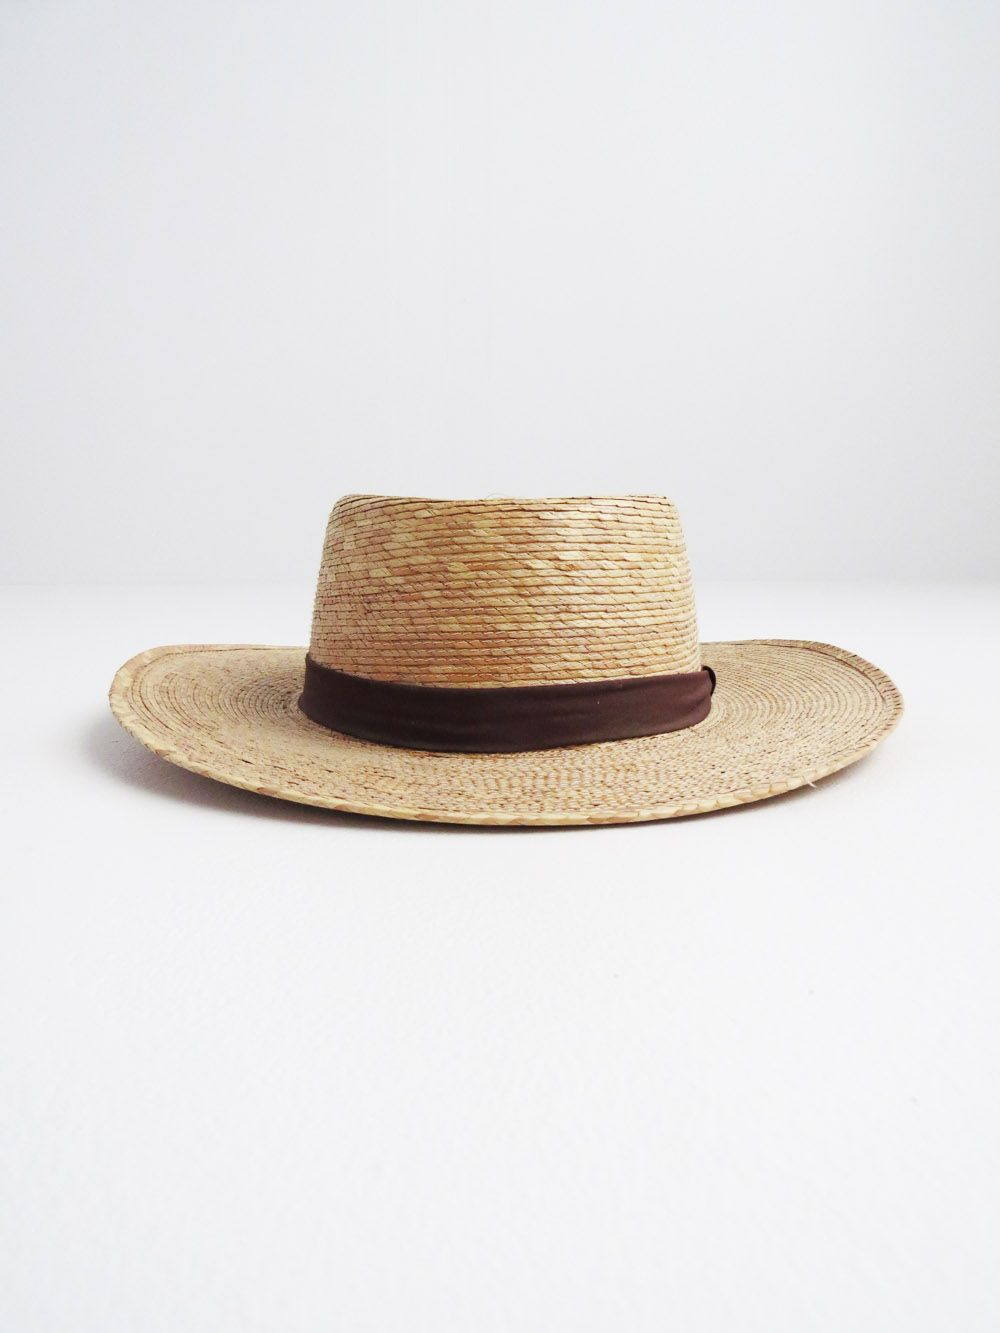 Wide Brim Verano Hat    Vintage Mexican Palm Leaf Hat SOLD  332a71056f7